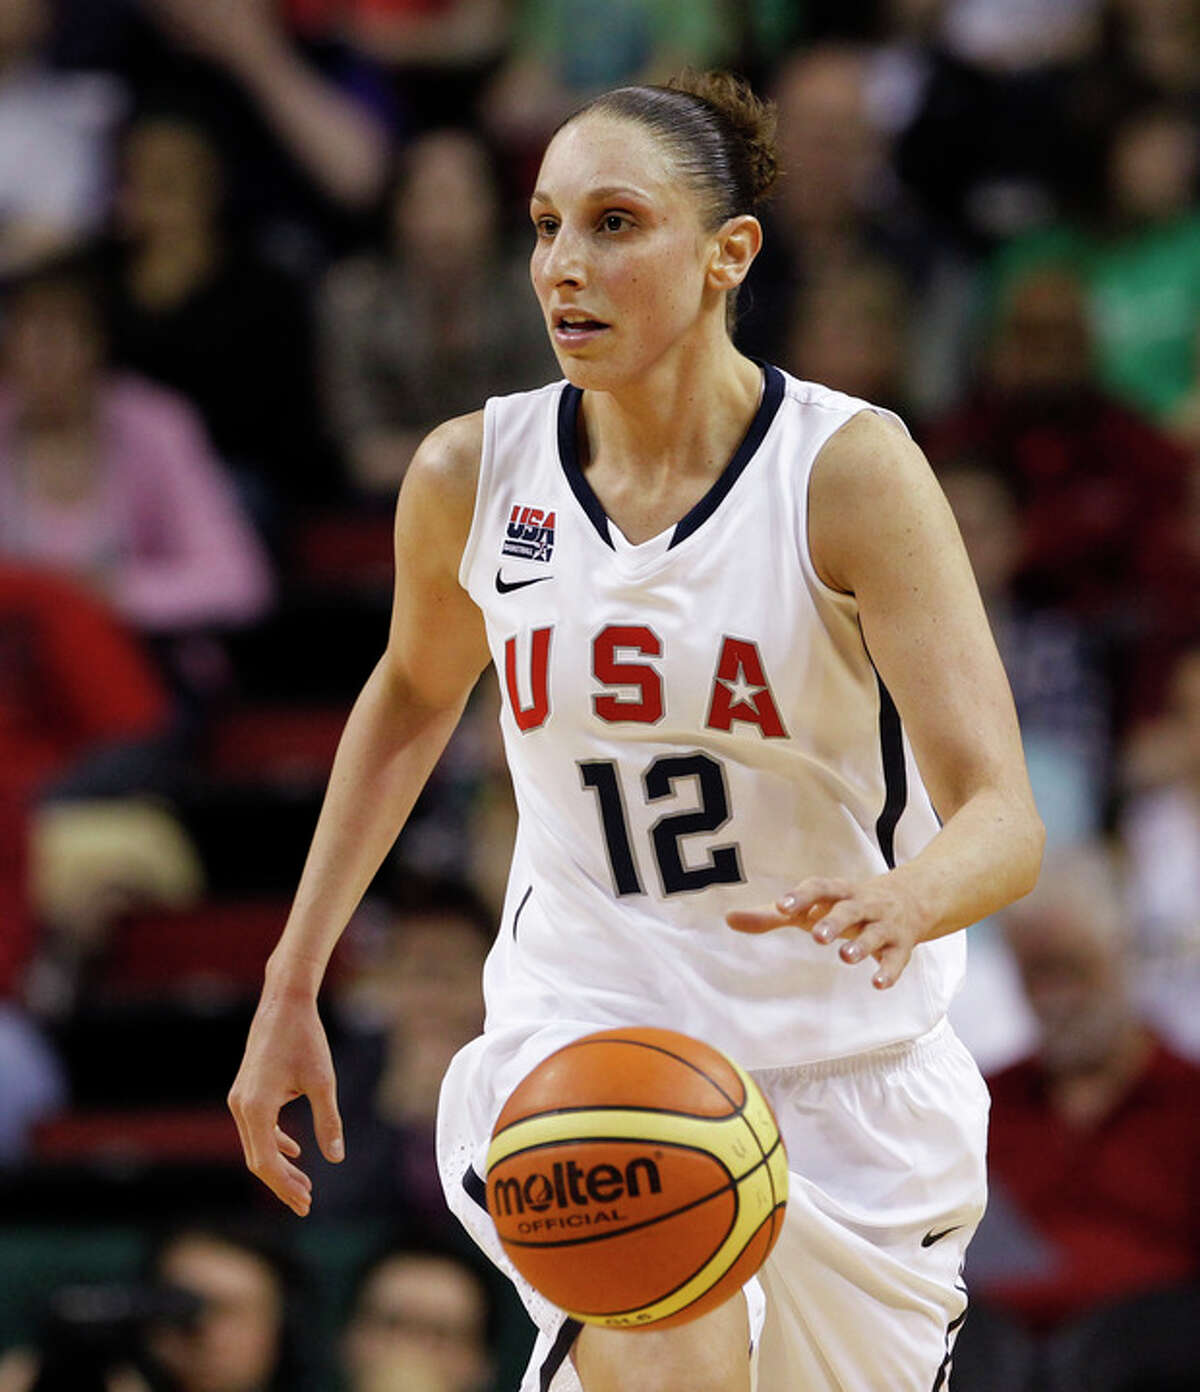 """FILE - In this photo May 12, 2012 file photo, United States' Diana Taurasi competes against China in an exhibition women's basketball game in Seattle. Taurasi has missed the Phoenix Mercury's last 16 games with hip and ankle injuries, but she tells the AP she will be """"ready to go"""" for the Olympics. She will join the U.S. team in Washington this weekend for two days of practice before playing Brazil in an exhibition game. (AP Photo/Elaine Thompson, File)"""